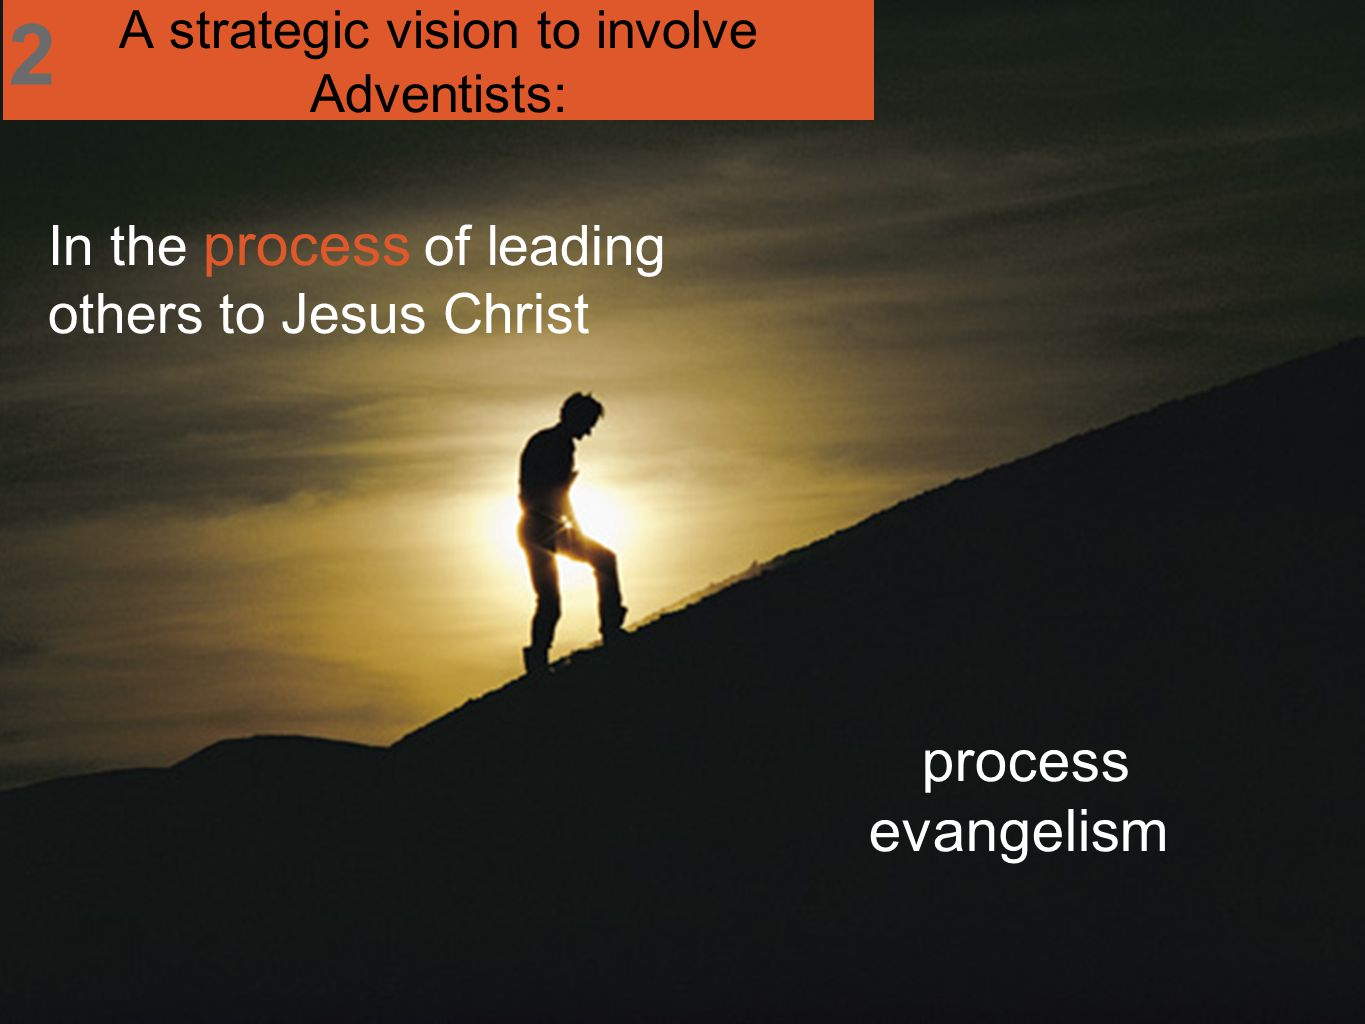 process evangelism In the process of leading others to Jesus Christ A strategic vision to involve Adventists: 2